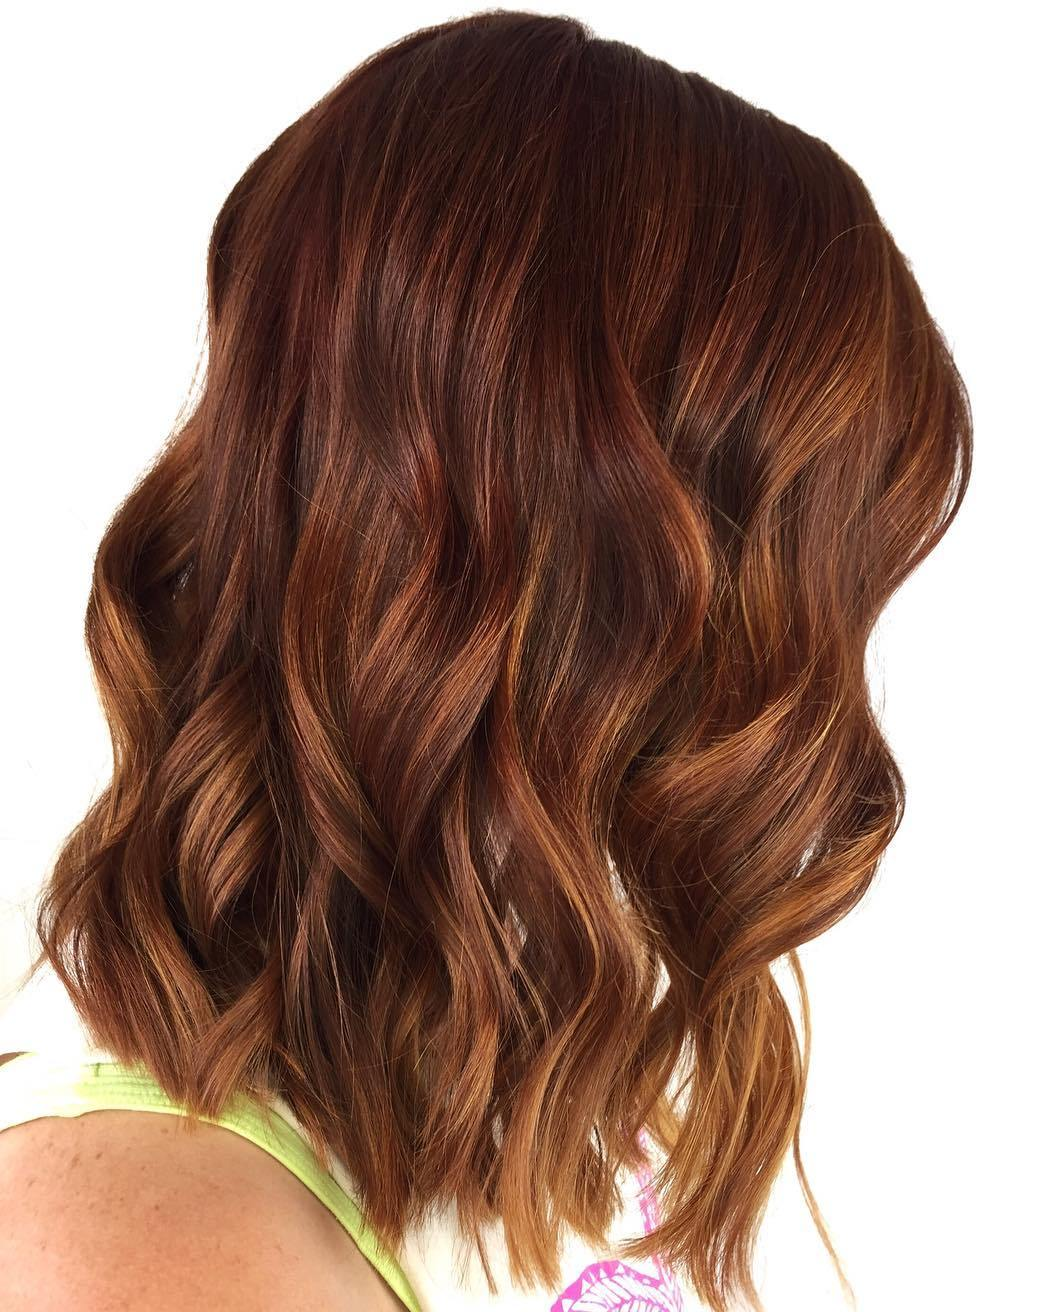 60 auburn hair colors to emphasize your individuality golden blonde highlights for auburn hair pmusecretfo Choice Image